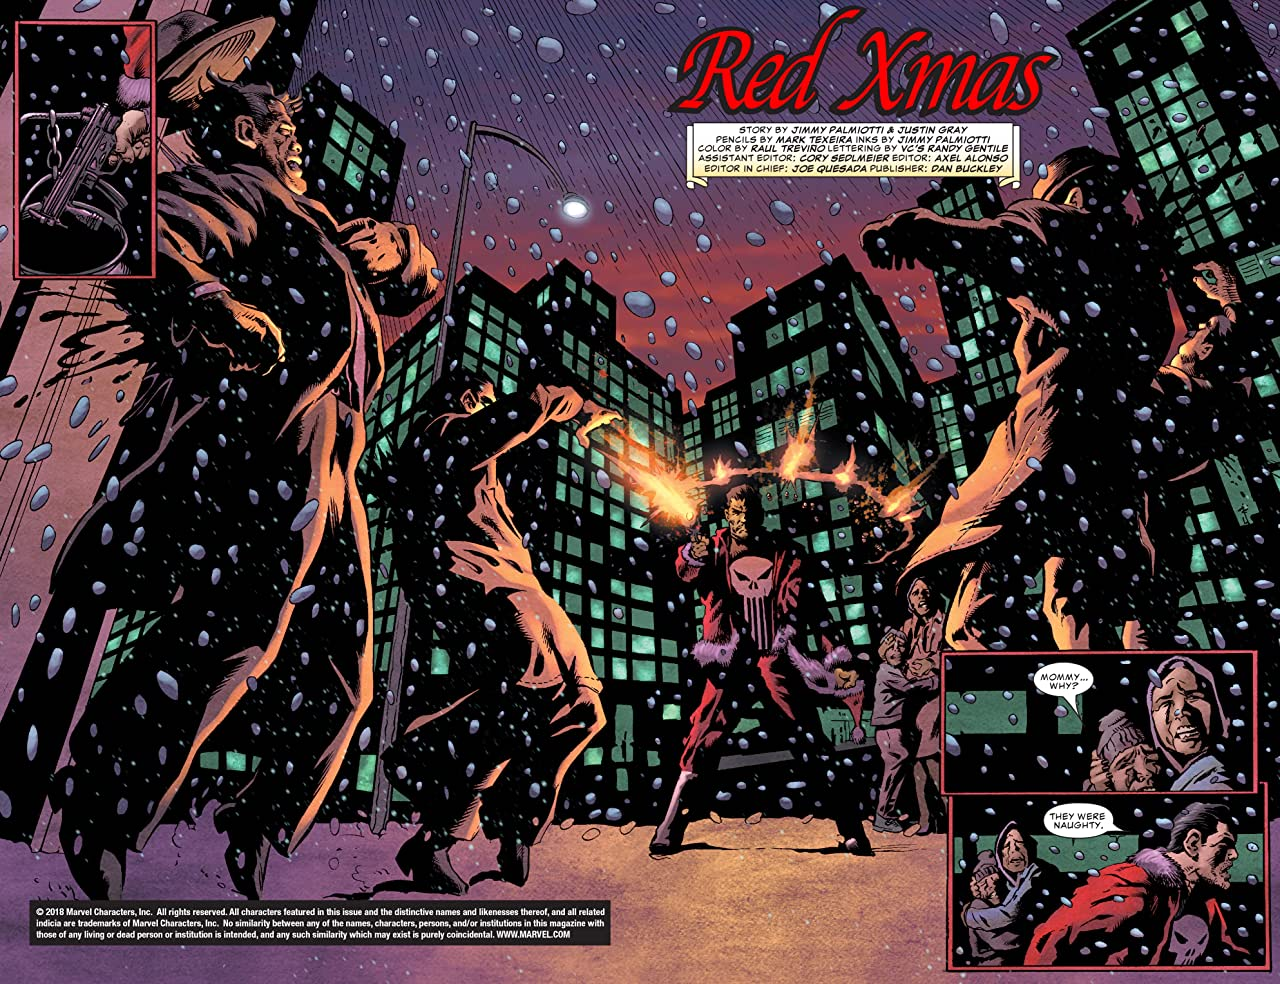 Punisher Red X-Mas (2004) #1